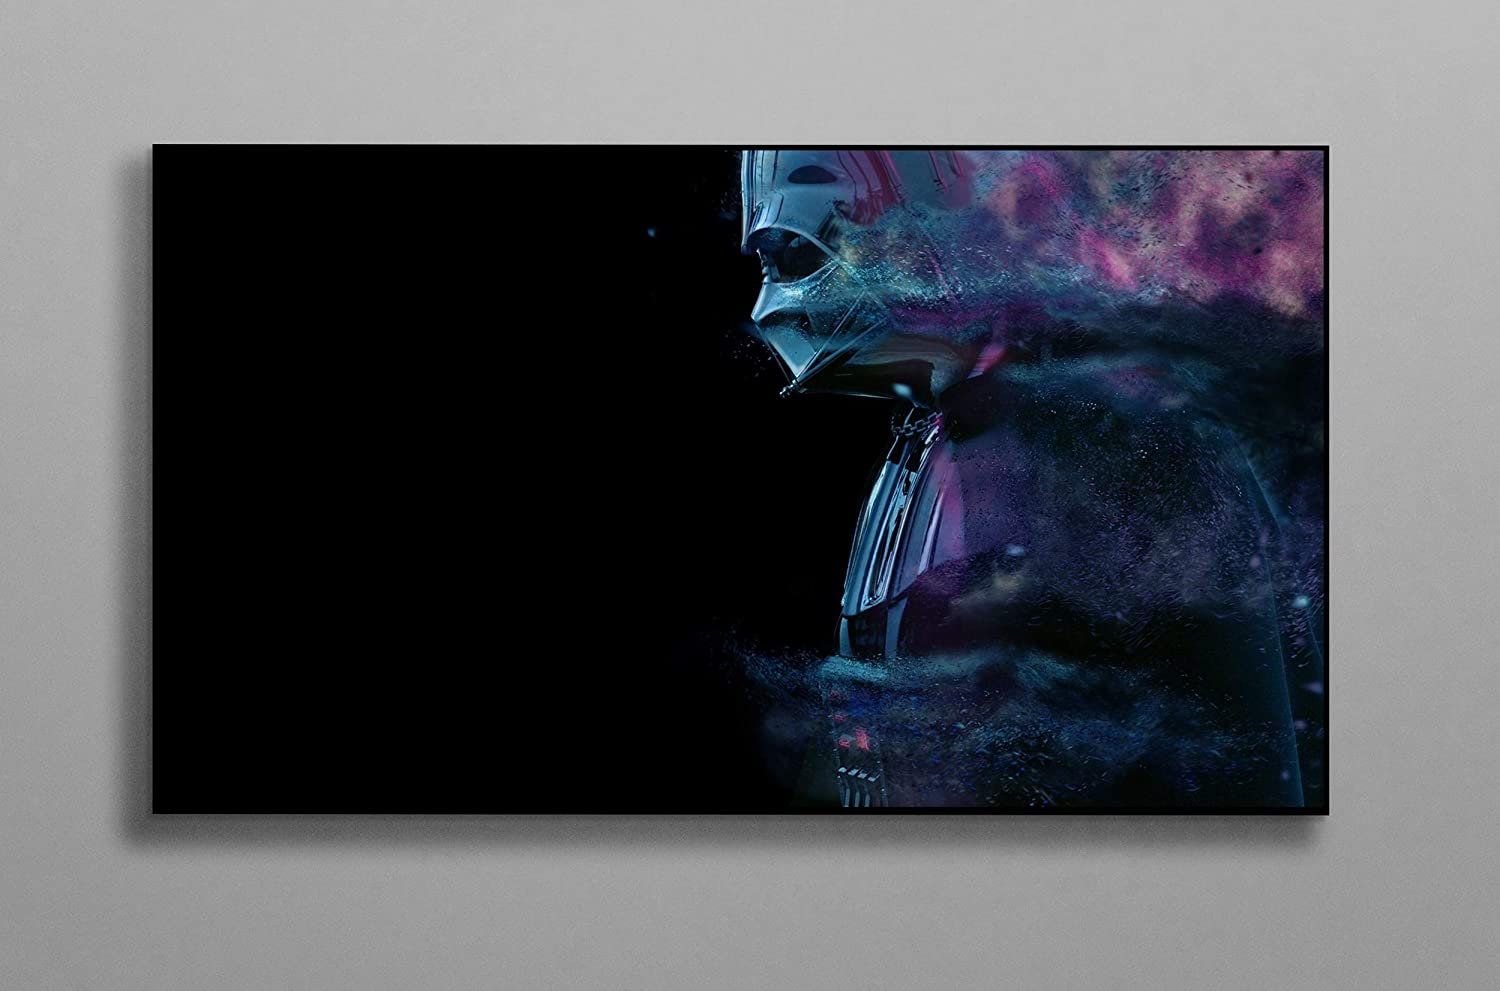 """Print Sci Fi Decor Compatible with Star Wars Poster Wall Decor Canvas Art Wall Art Print Gift Poster Unframed Printing Size - 11""""x17"""" 18""""x24"""" 24""""x32"""" 24""""x36"""" (S - 11""""x17"""" (28x43cm))"""